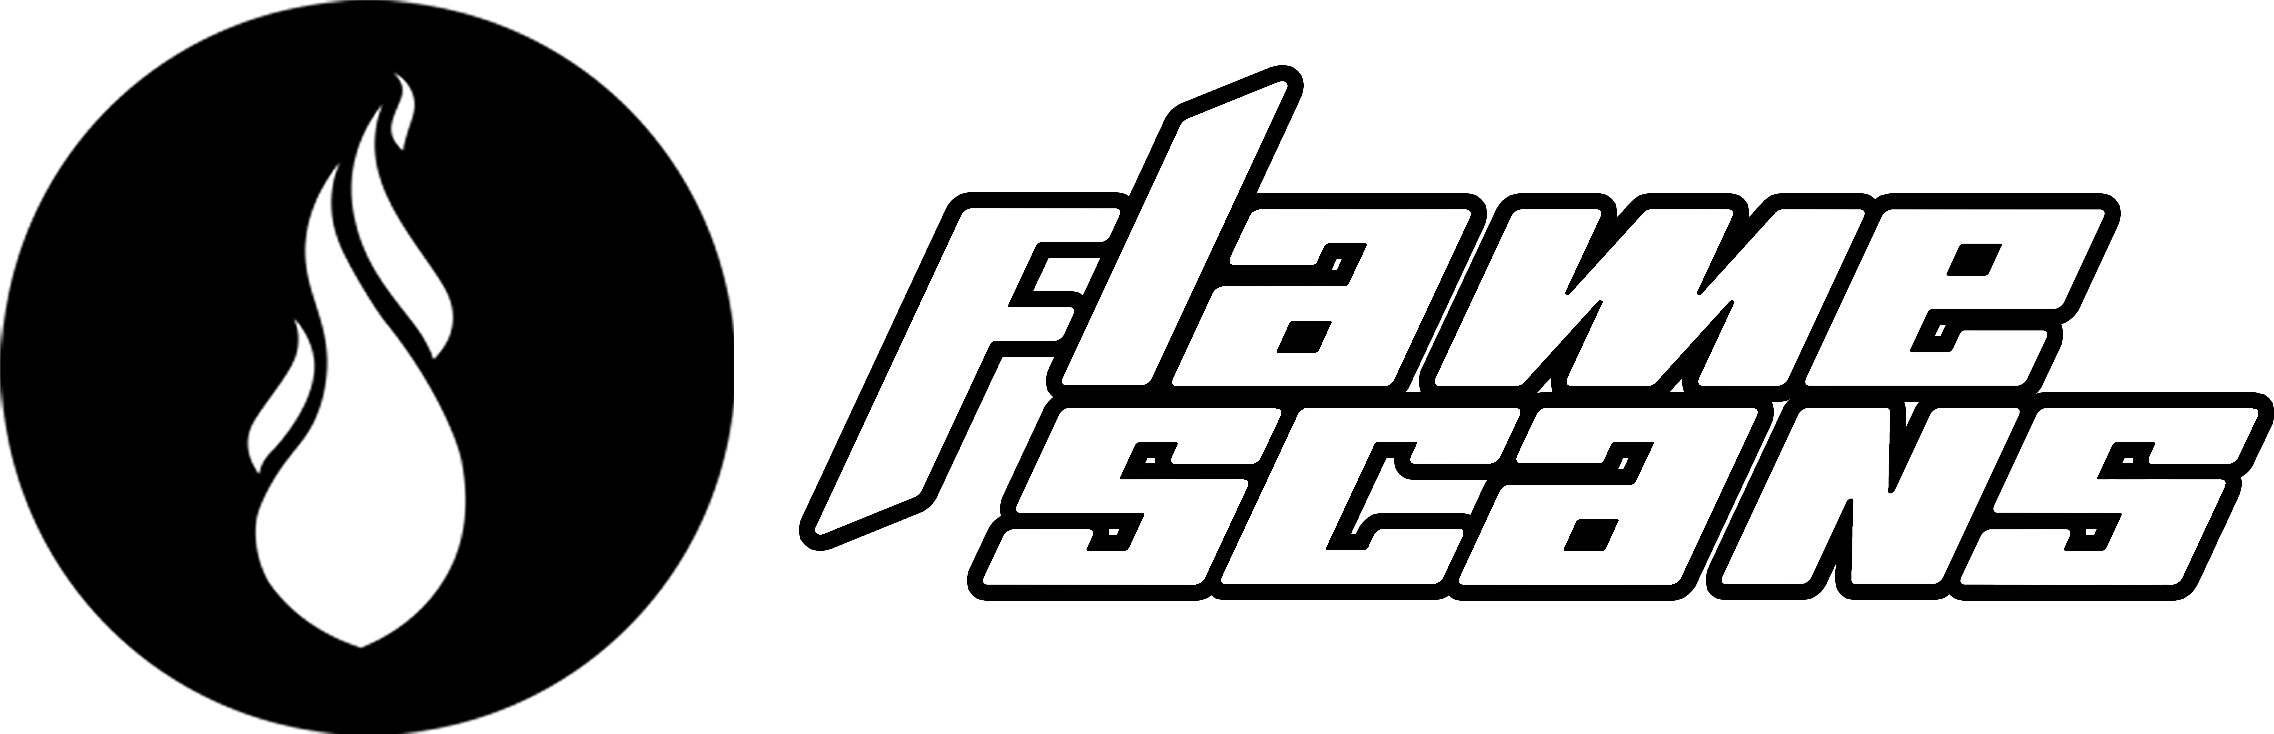 Flame Scans - A Quality Scanlation